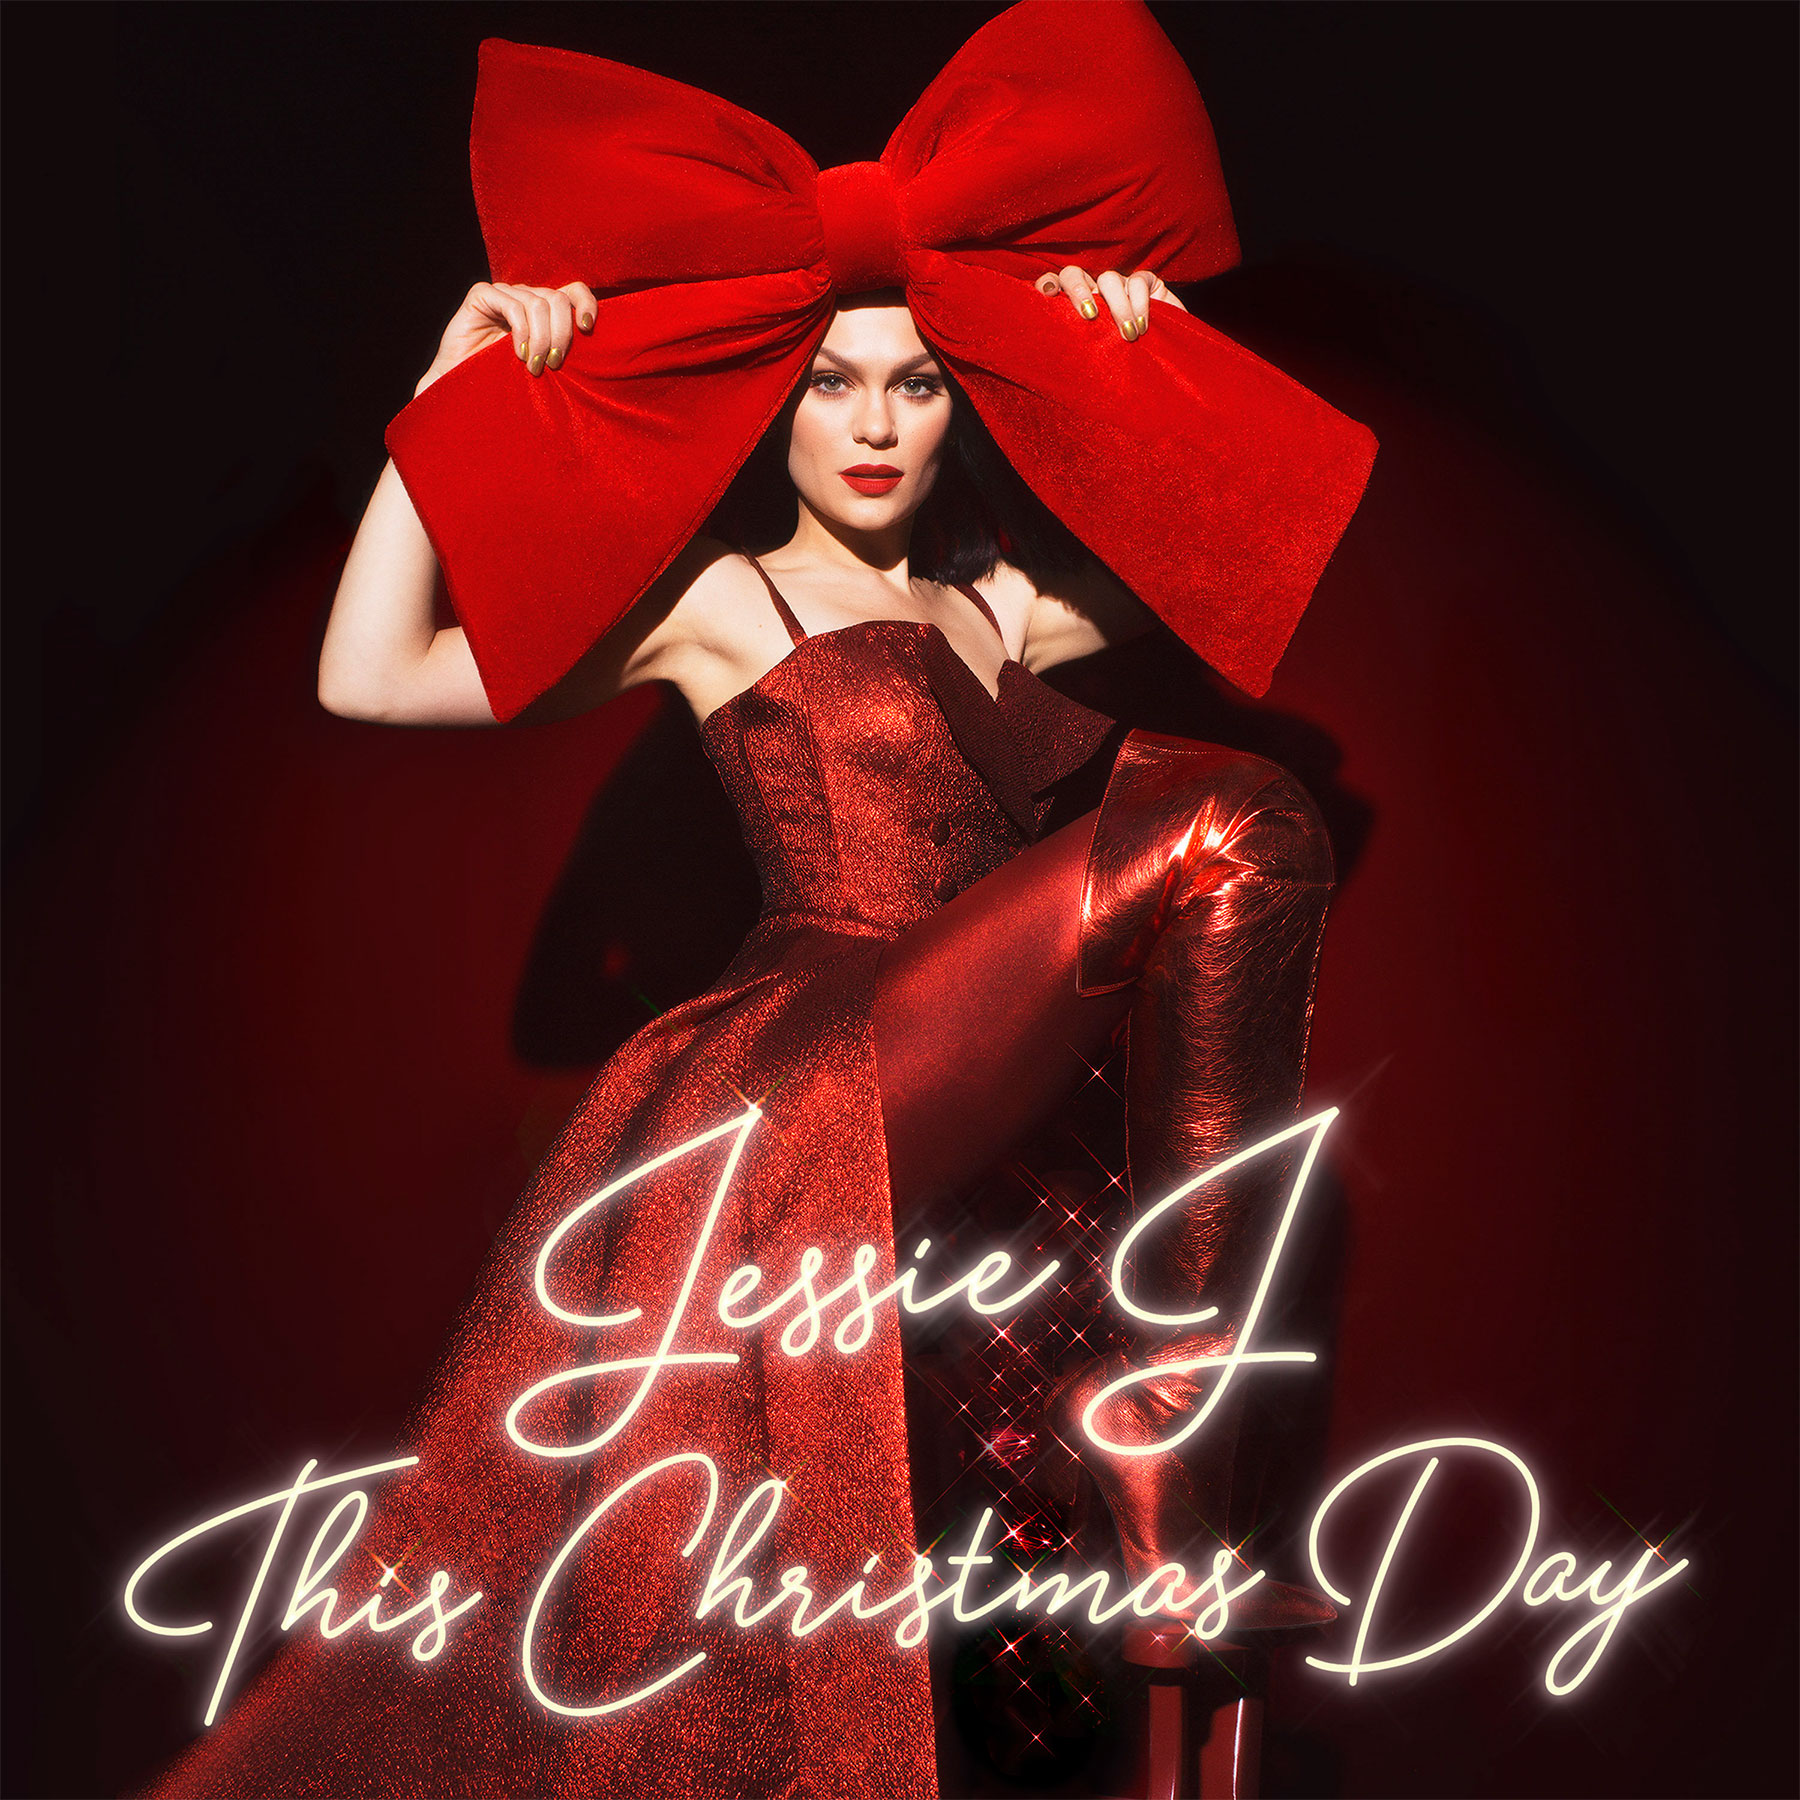 Jessie J, This Christmas Day